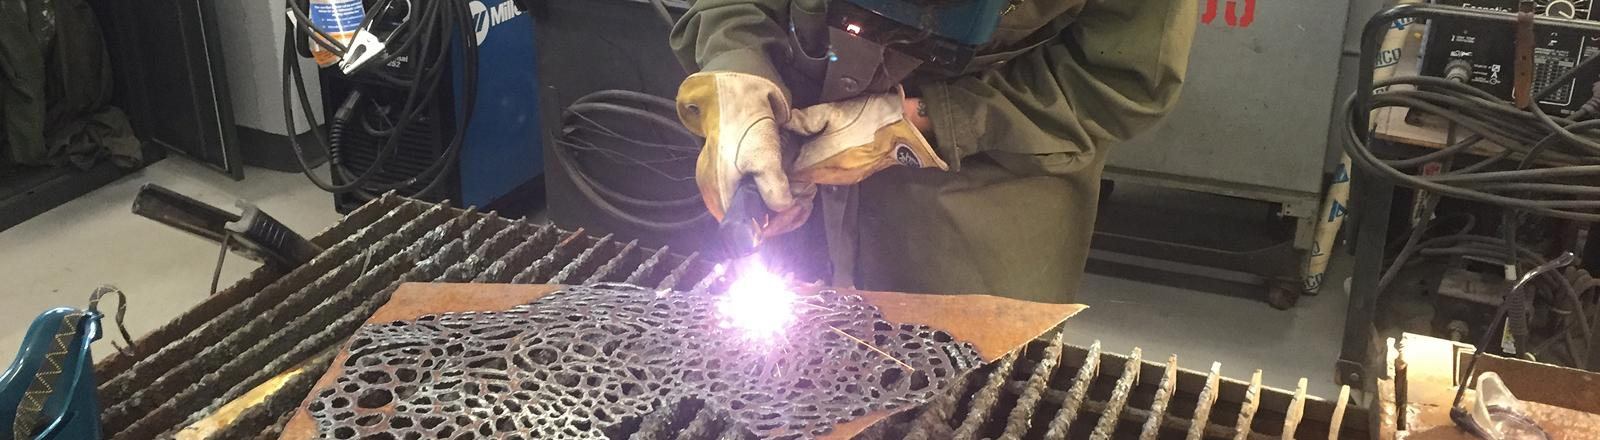 A Loyola Art student uses a blowtorch to make a sculpture.